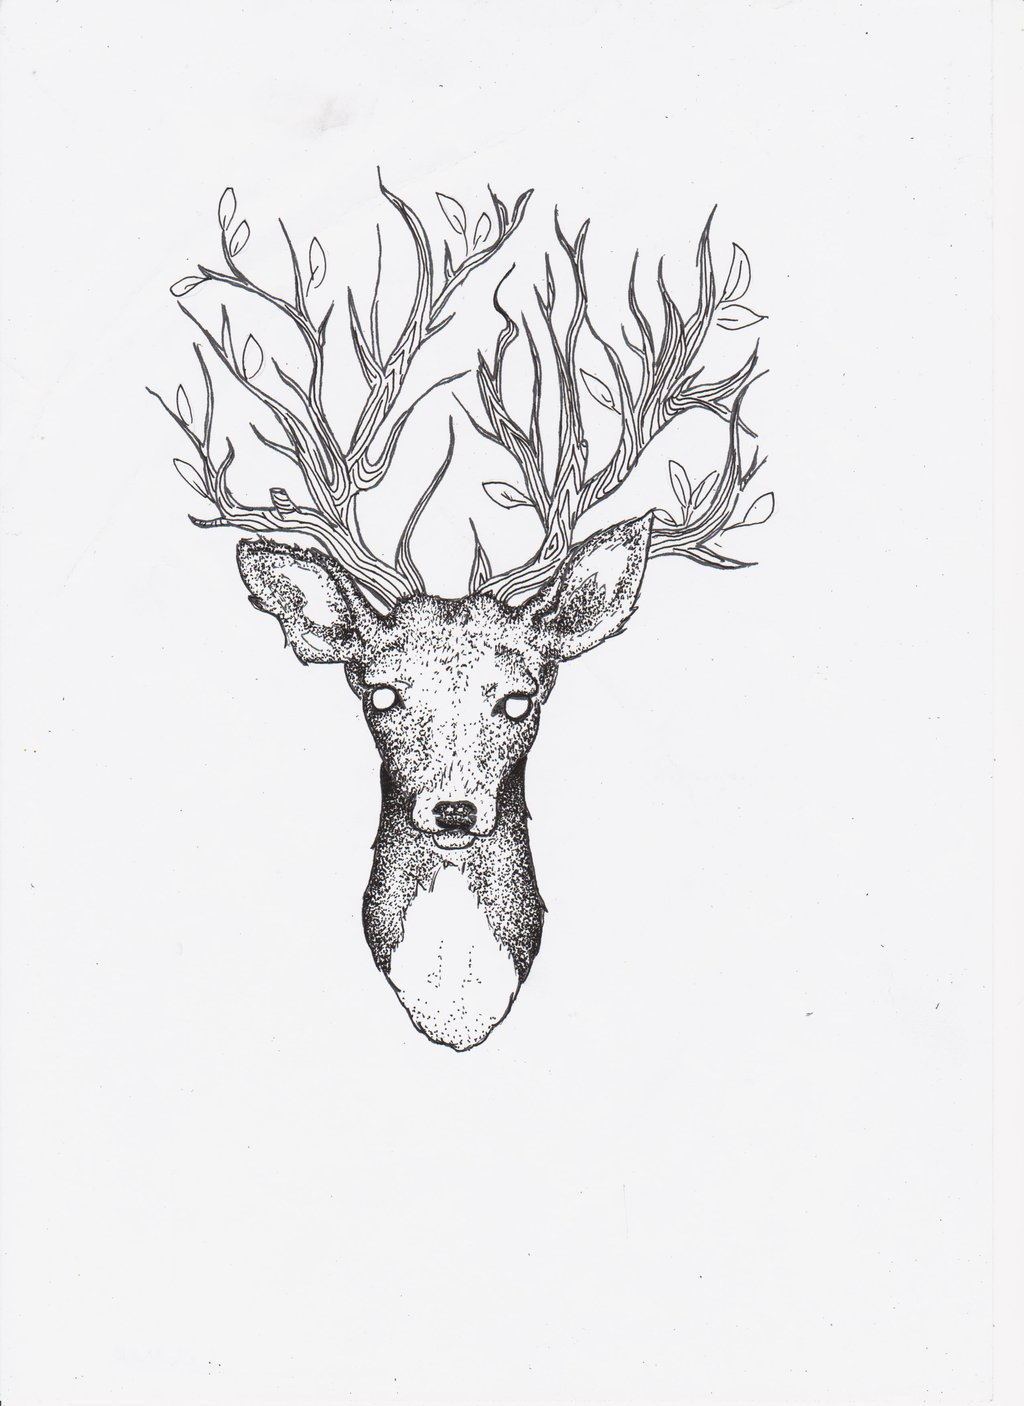 Drawn stag traditional With tattoo Stags done good